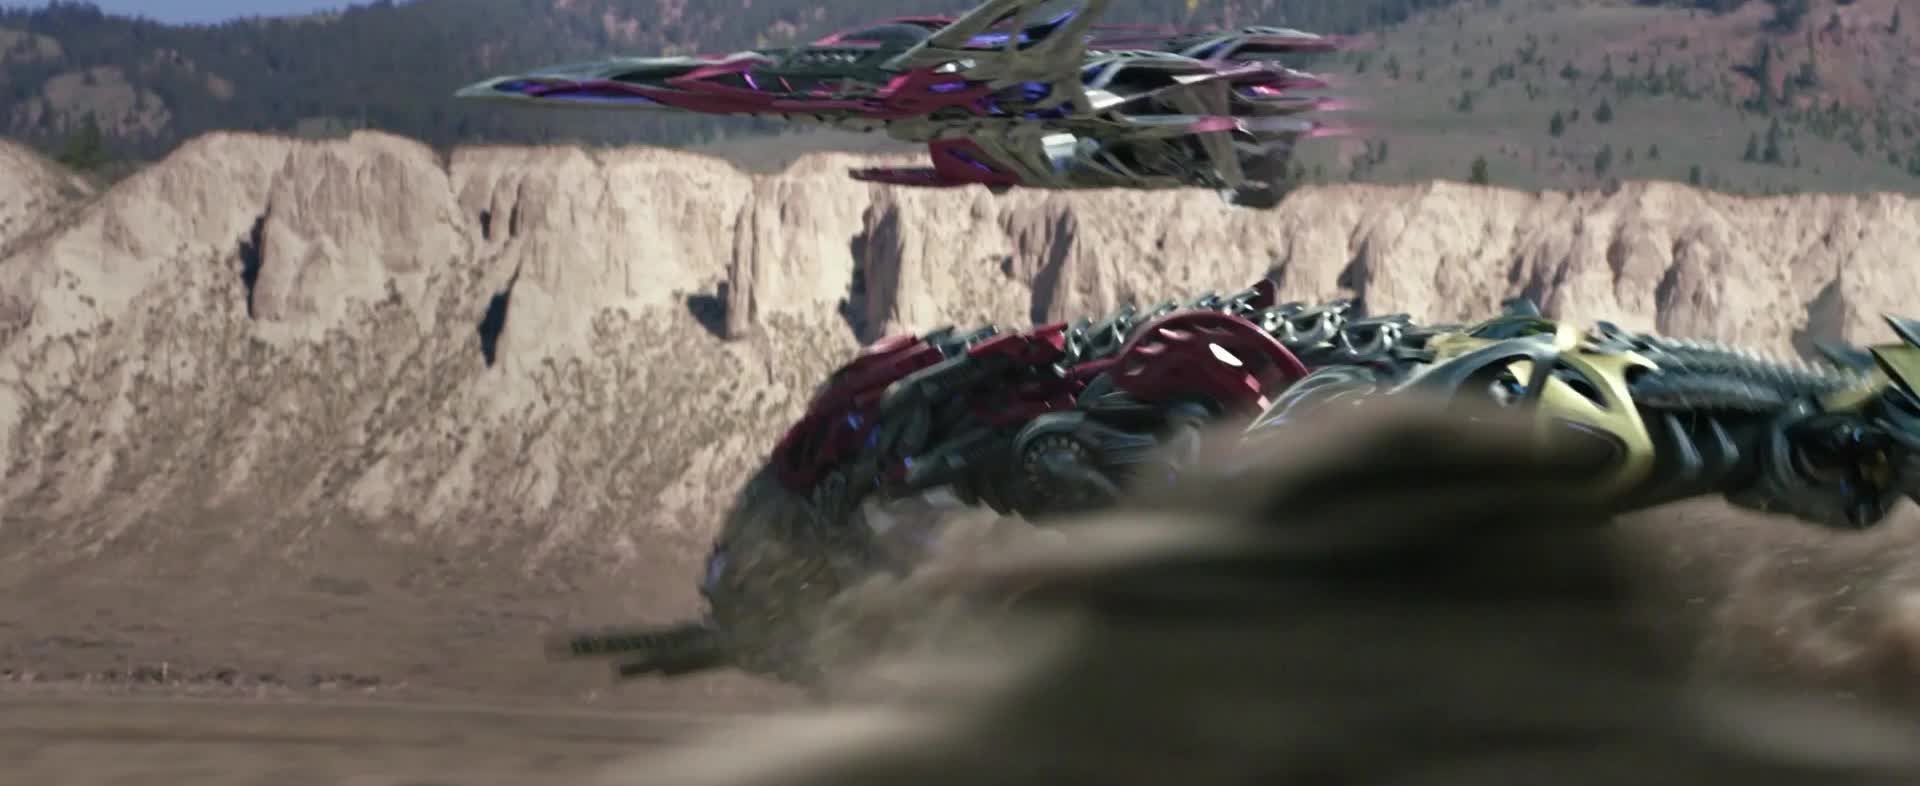 charing-zords-power-ranger-movie, lionsgate, movies, power rangers, powerrangers, Charging Zords Power Rangers Movie GIFs